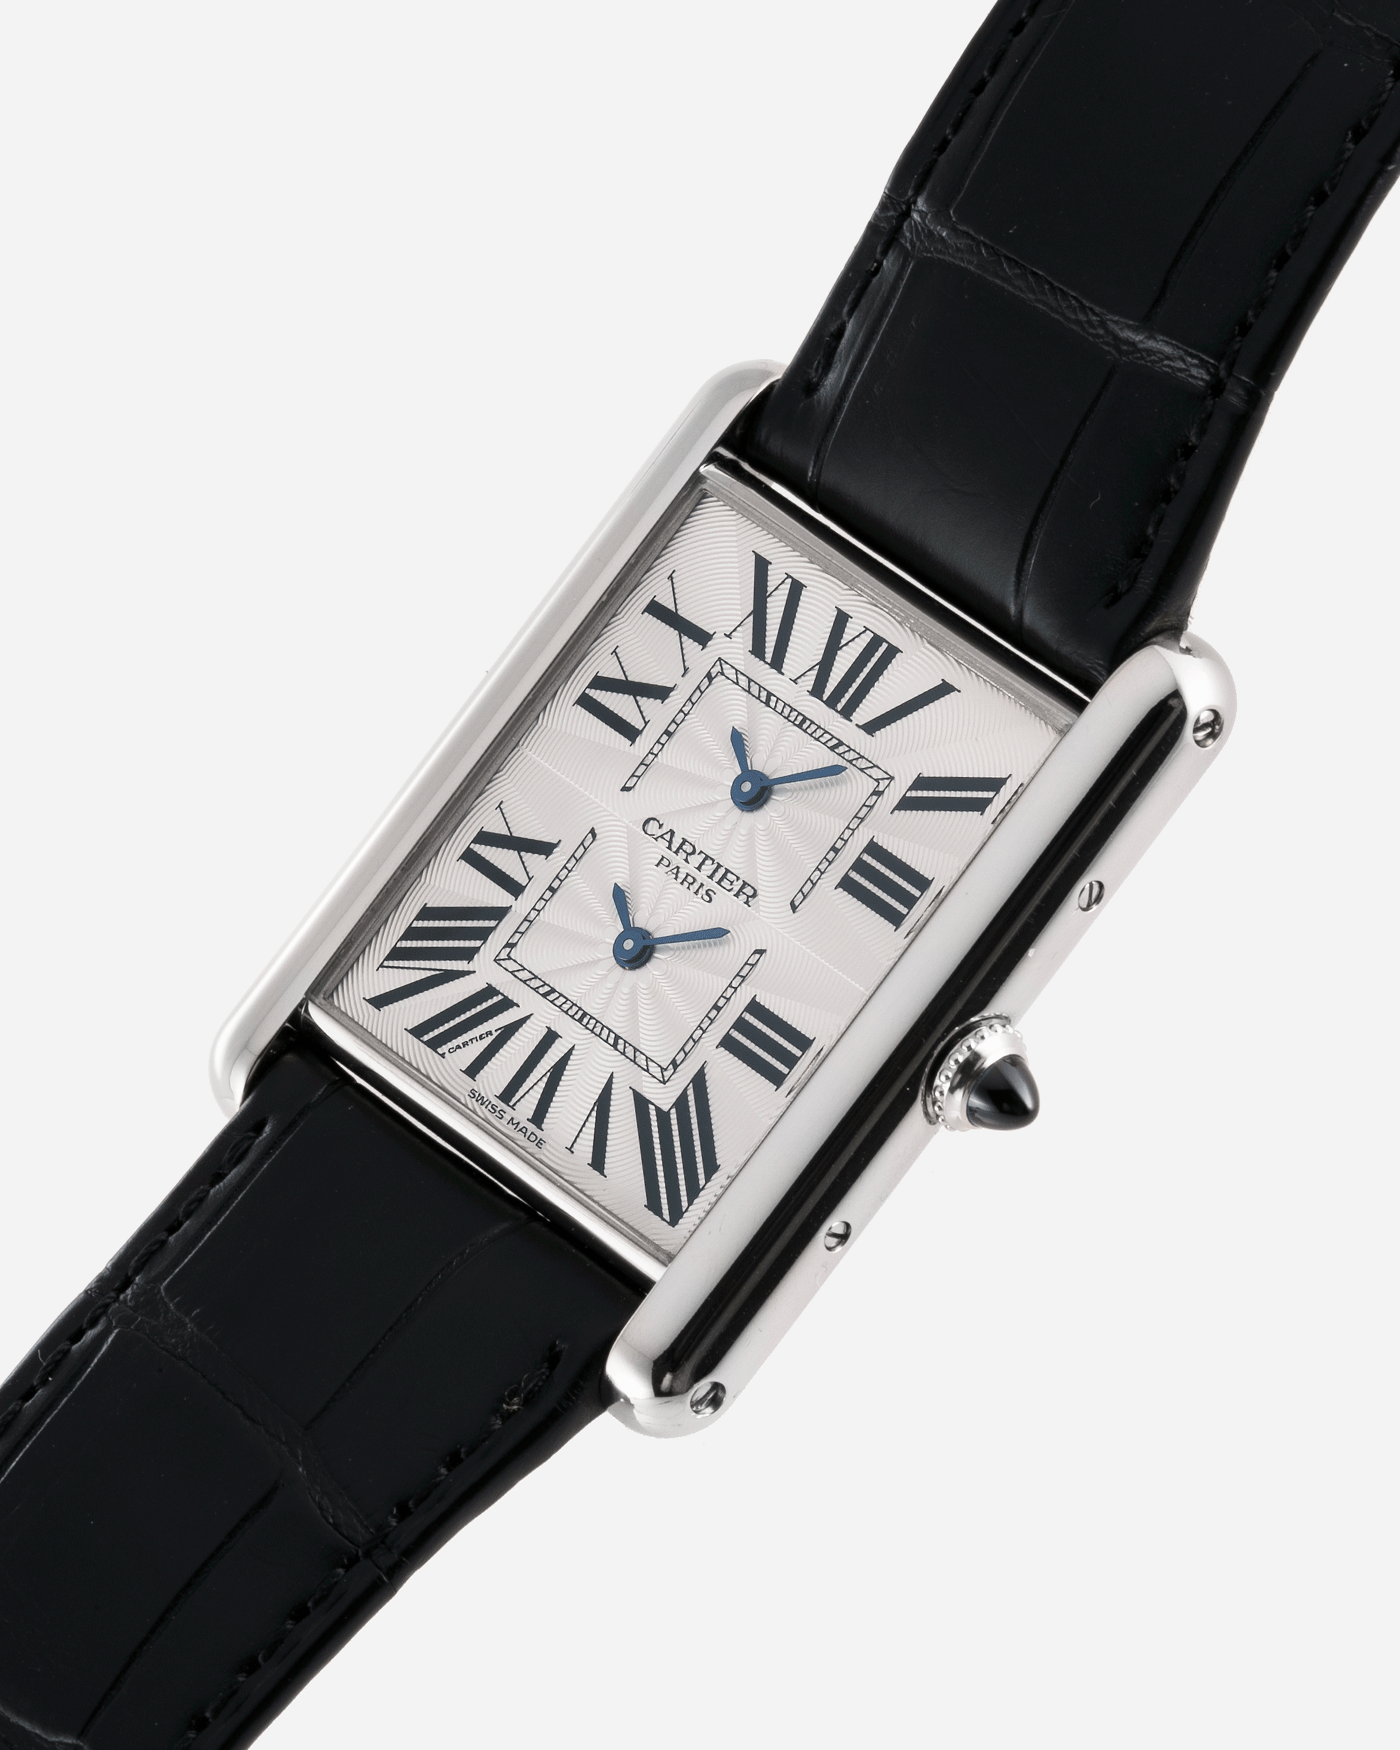 Brand: Cartier Year: 2010 Model: CPCP Tank Two Time Zone Reference: 2917 Material: 18k White Gold Movement: Piaget-Based Manually Wound Cal. 9901 MC Case Diameter: 29.3mm width, 38.3mm length Strap: Cartier Black Alligator Strap with 18k White Gold Cartier Deployant Clasp